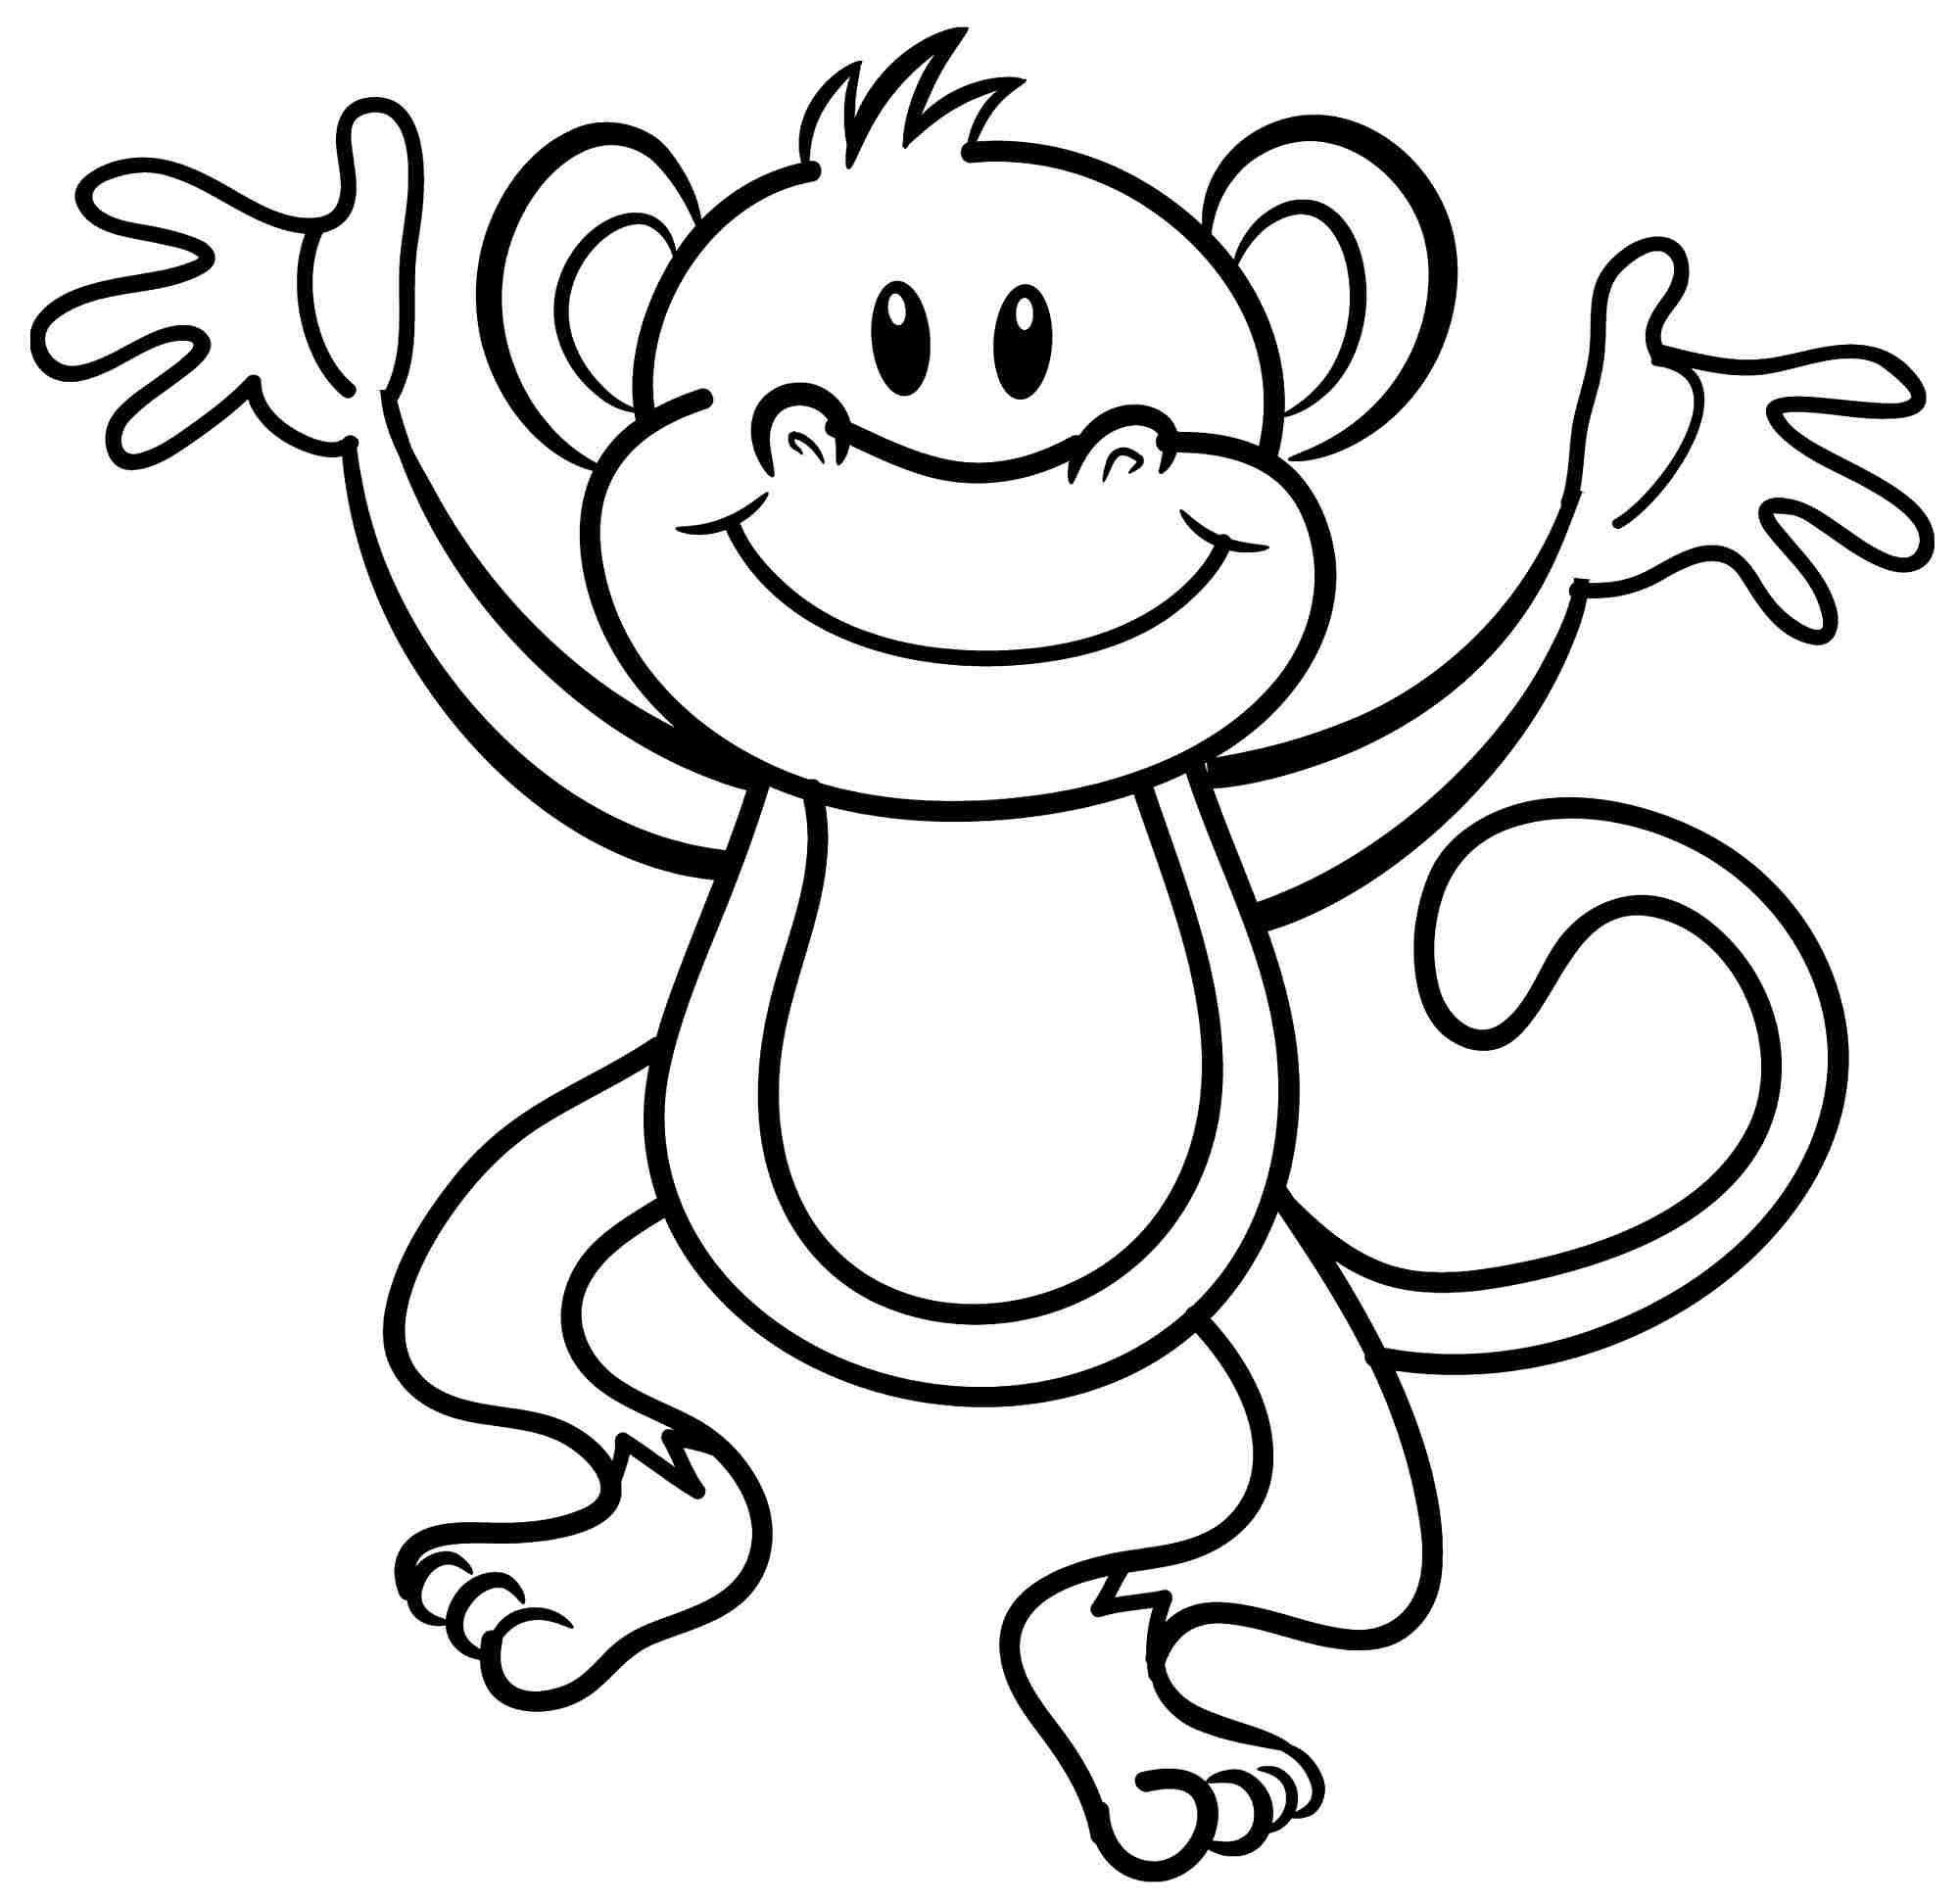 free coloring pages animals image 46 for kids - Couloring Sheets